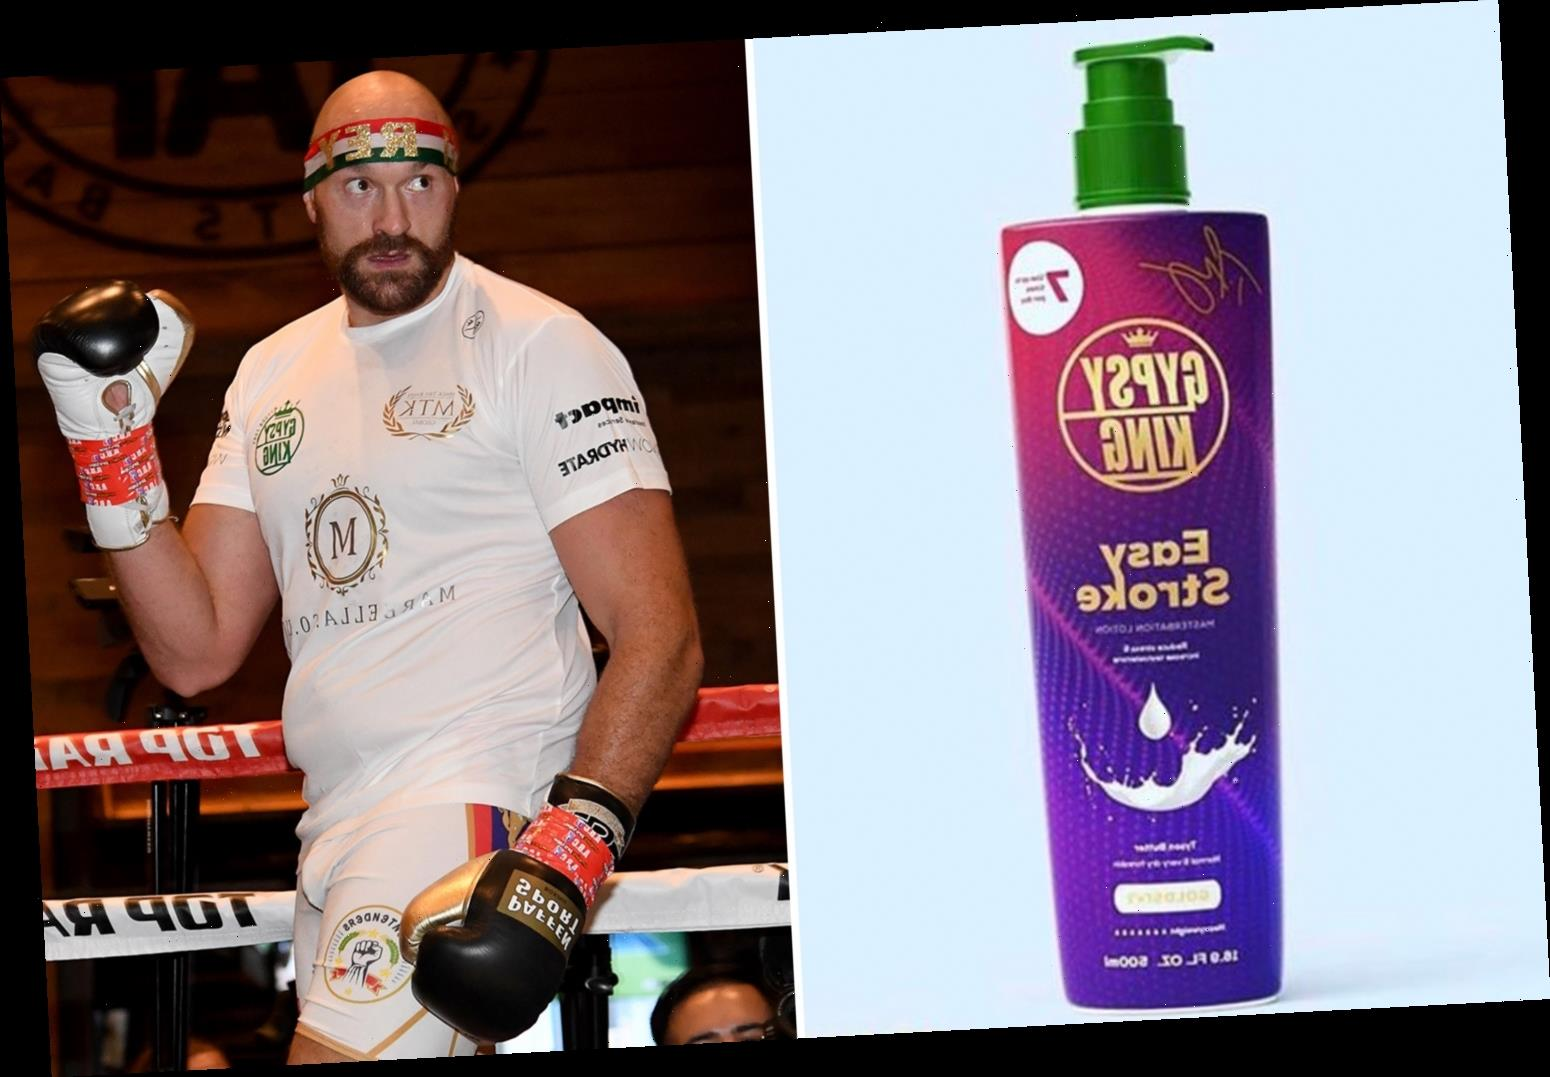 Tyson Fury shares pic of his masturbation lotion Easy Stroke and instructs 'for best results use up to 7 times a day' – The Sun